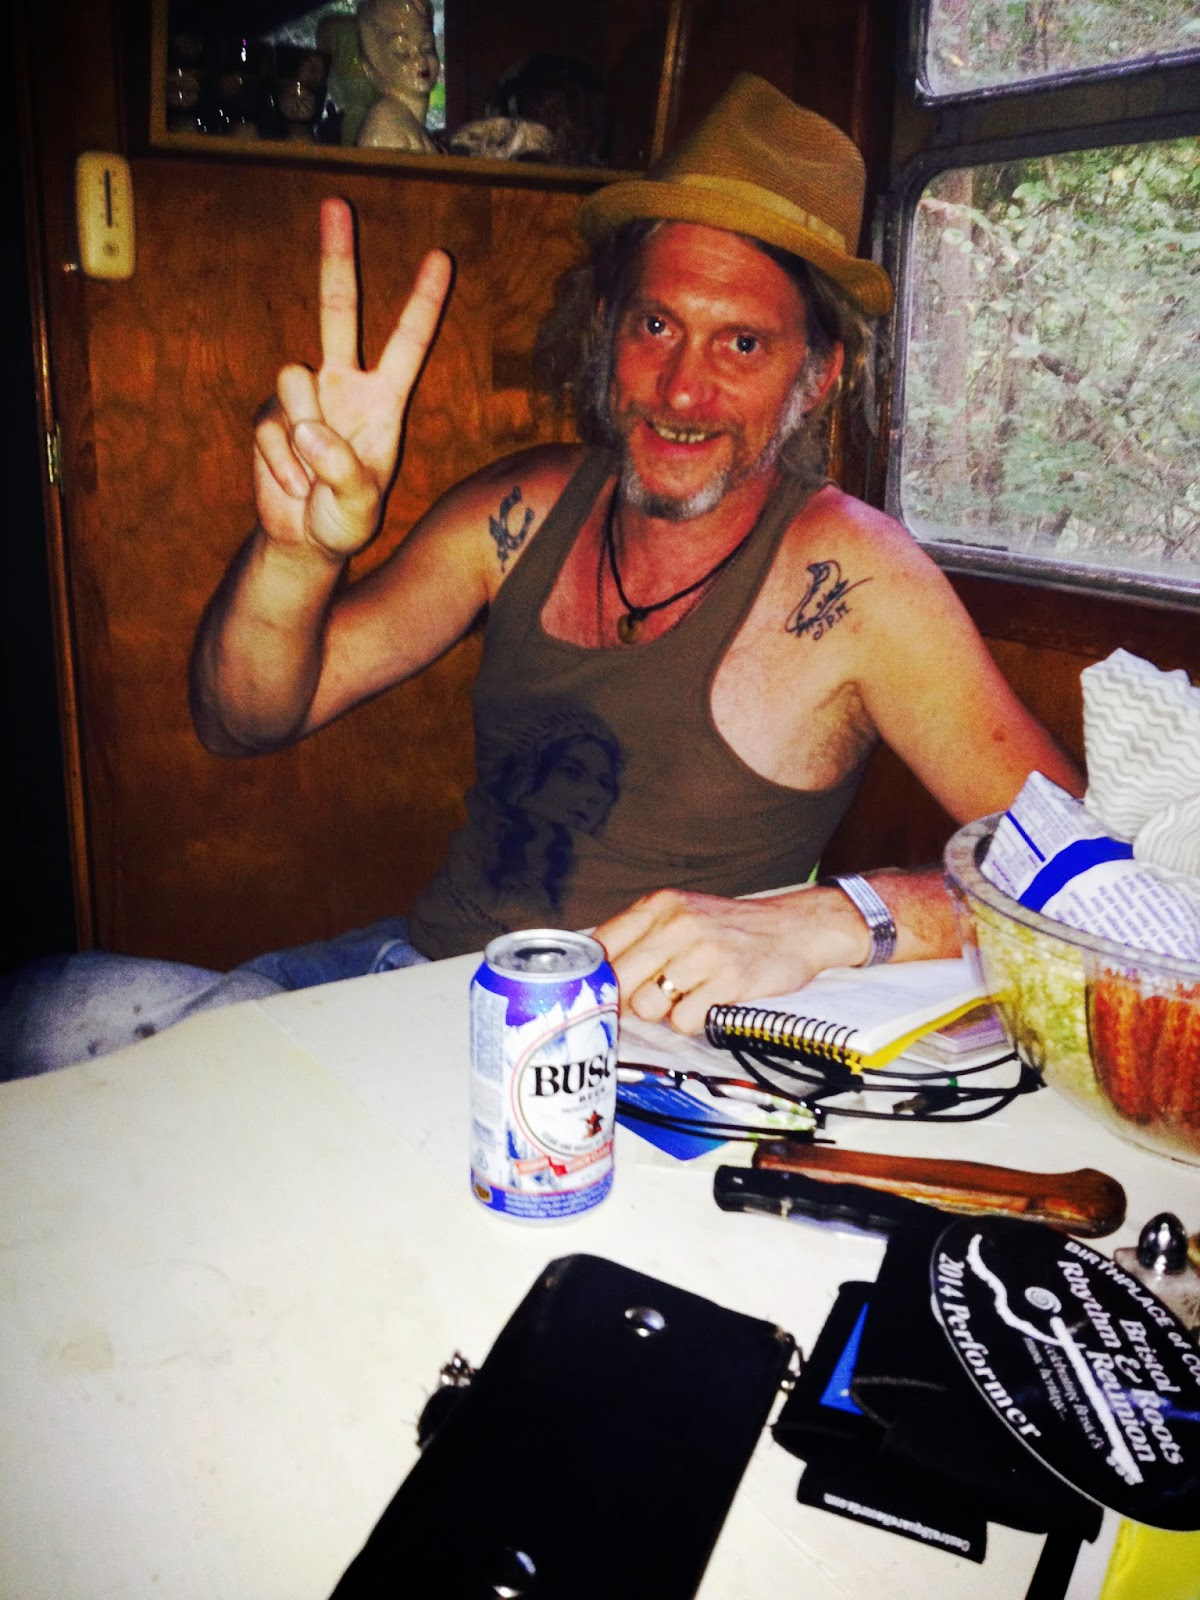 Labor south jimbo mathus preaching the gospel of rock n roll in the 47 year old musician songwriter and roots music evangelist says life is good these days dark night of the soul the latest effort by him and his band publicscrutiny Images